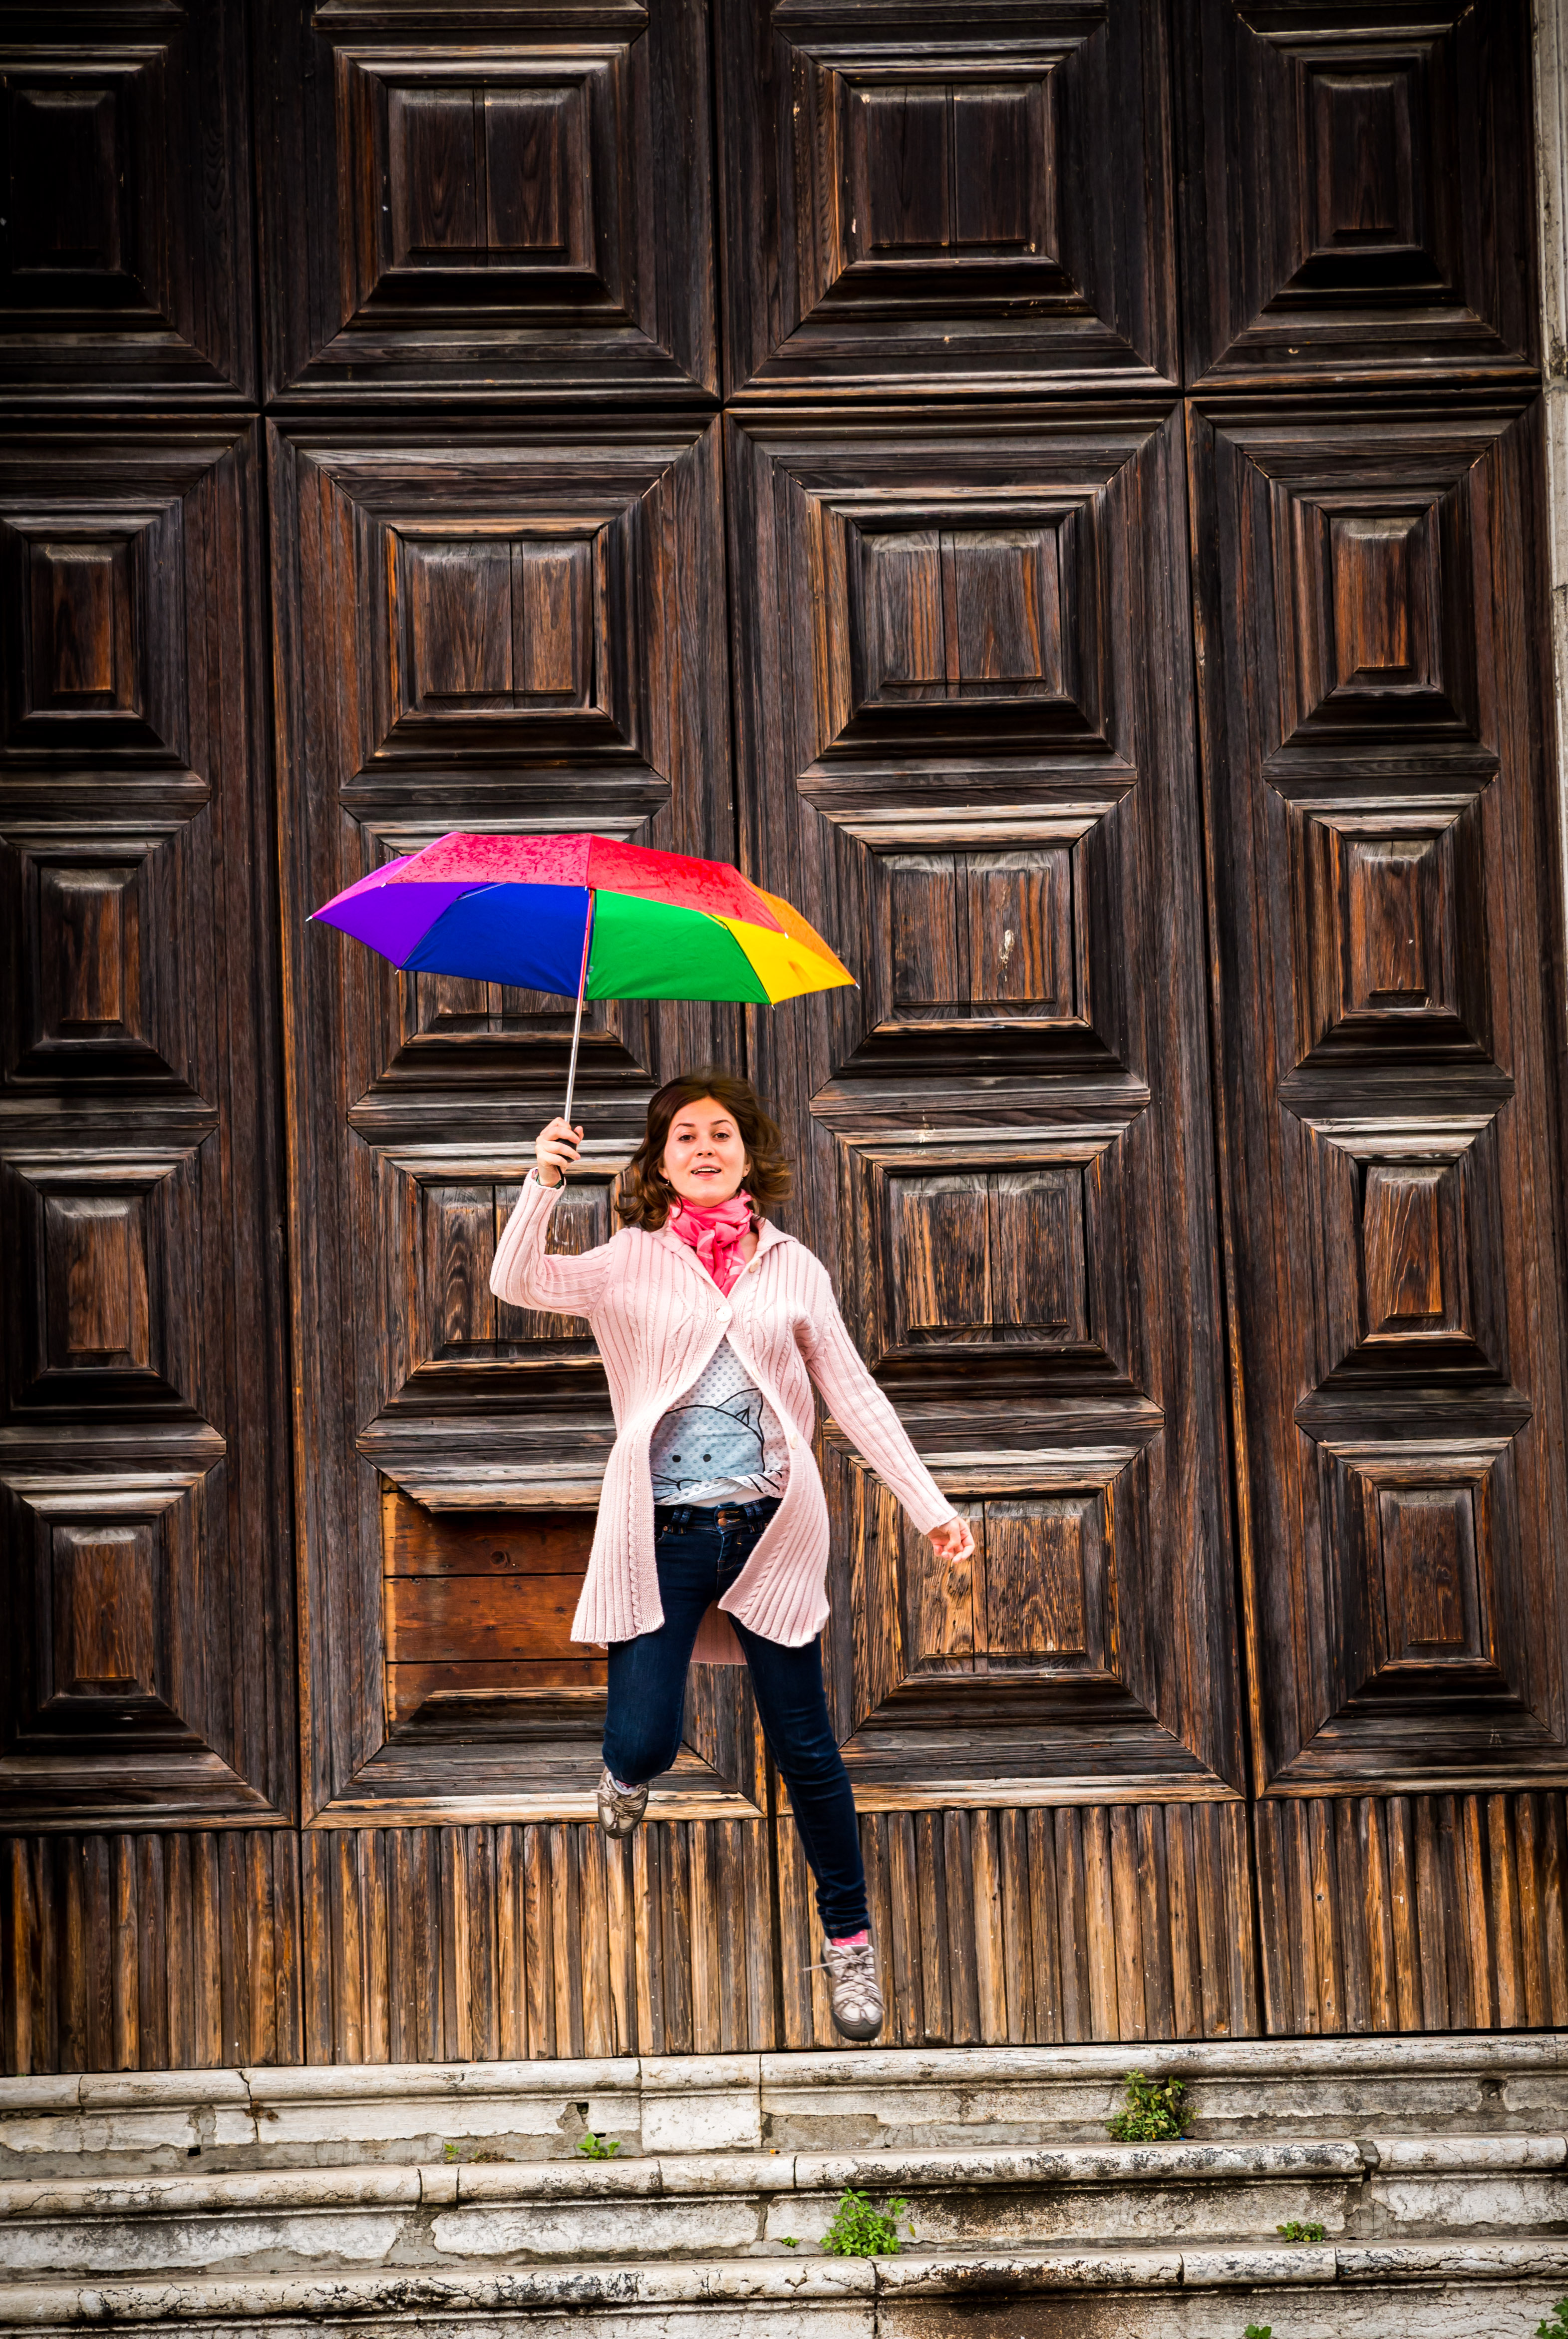 Foap-Umbrella_Fun_in_Venice